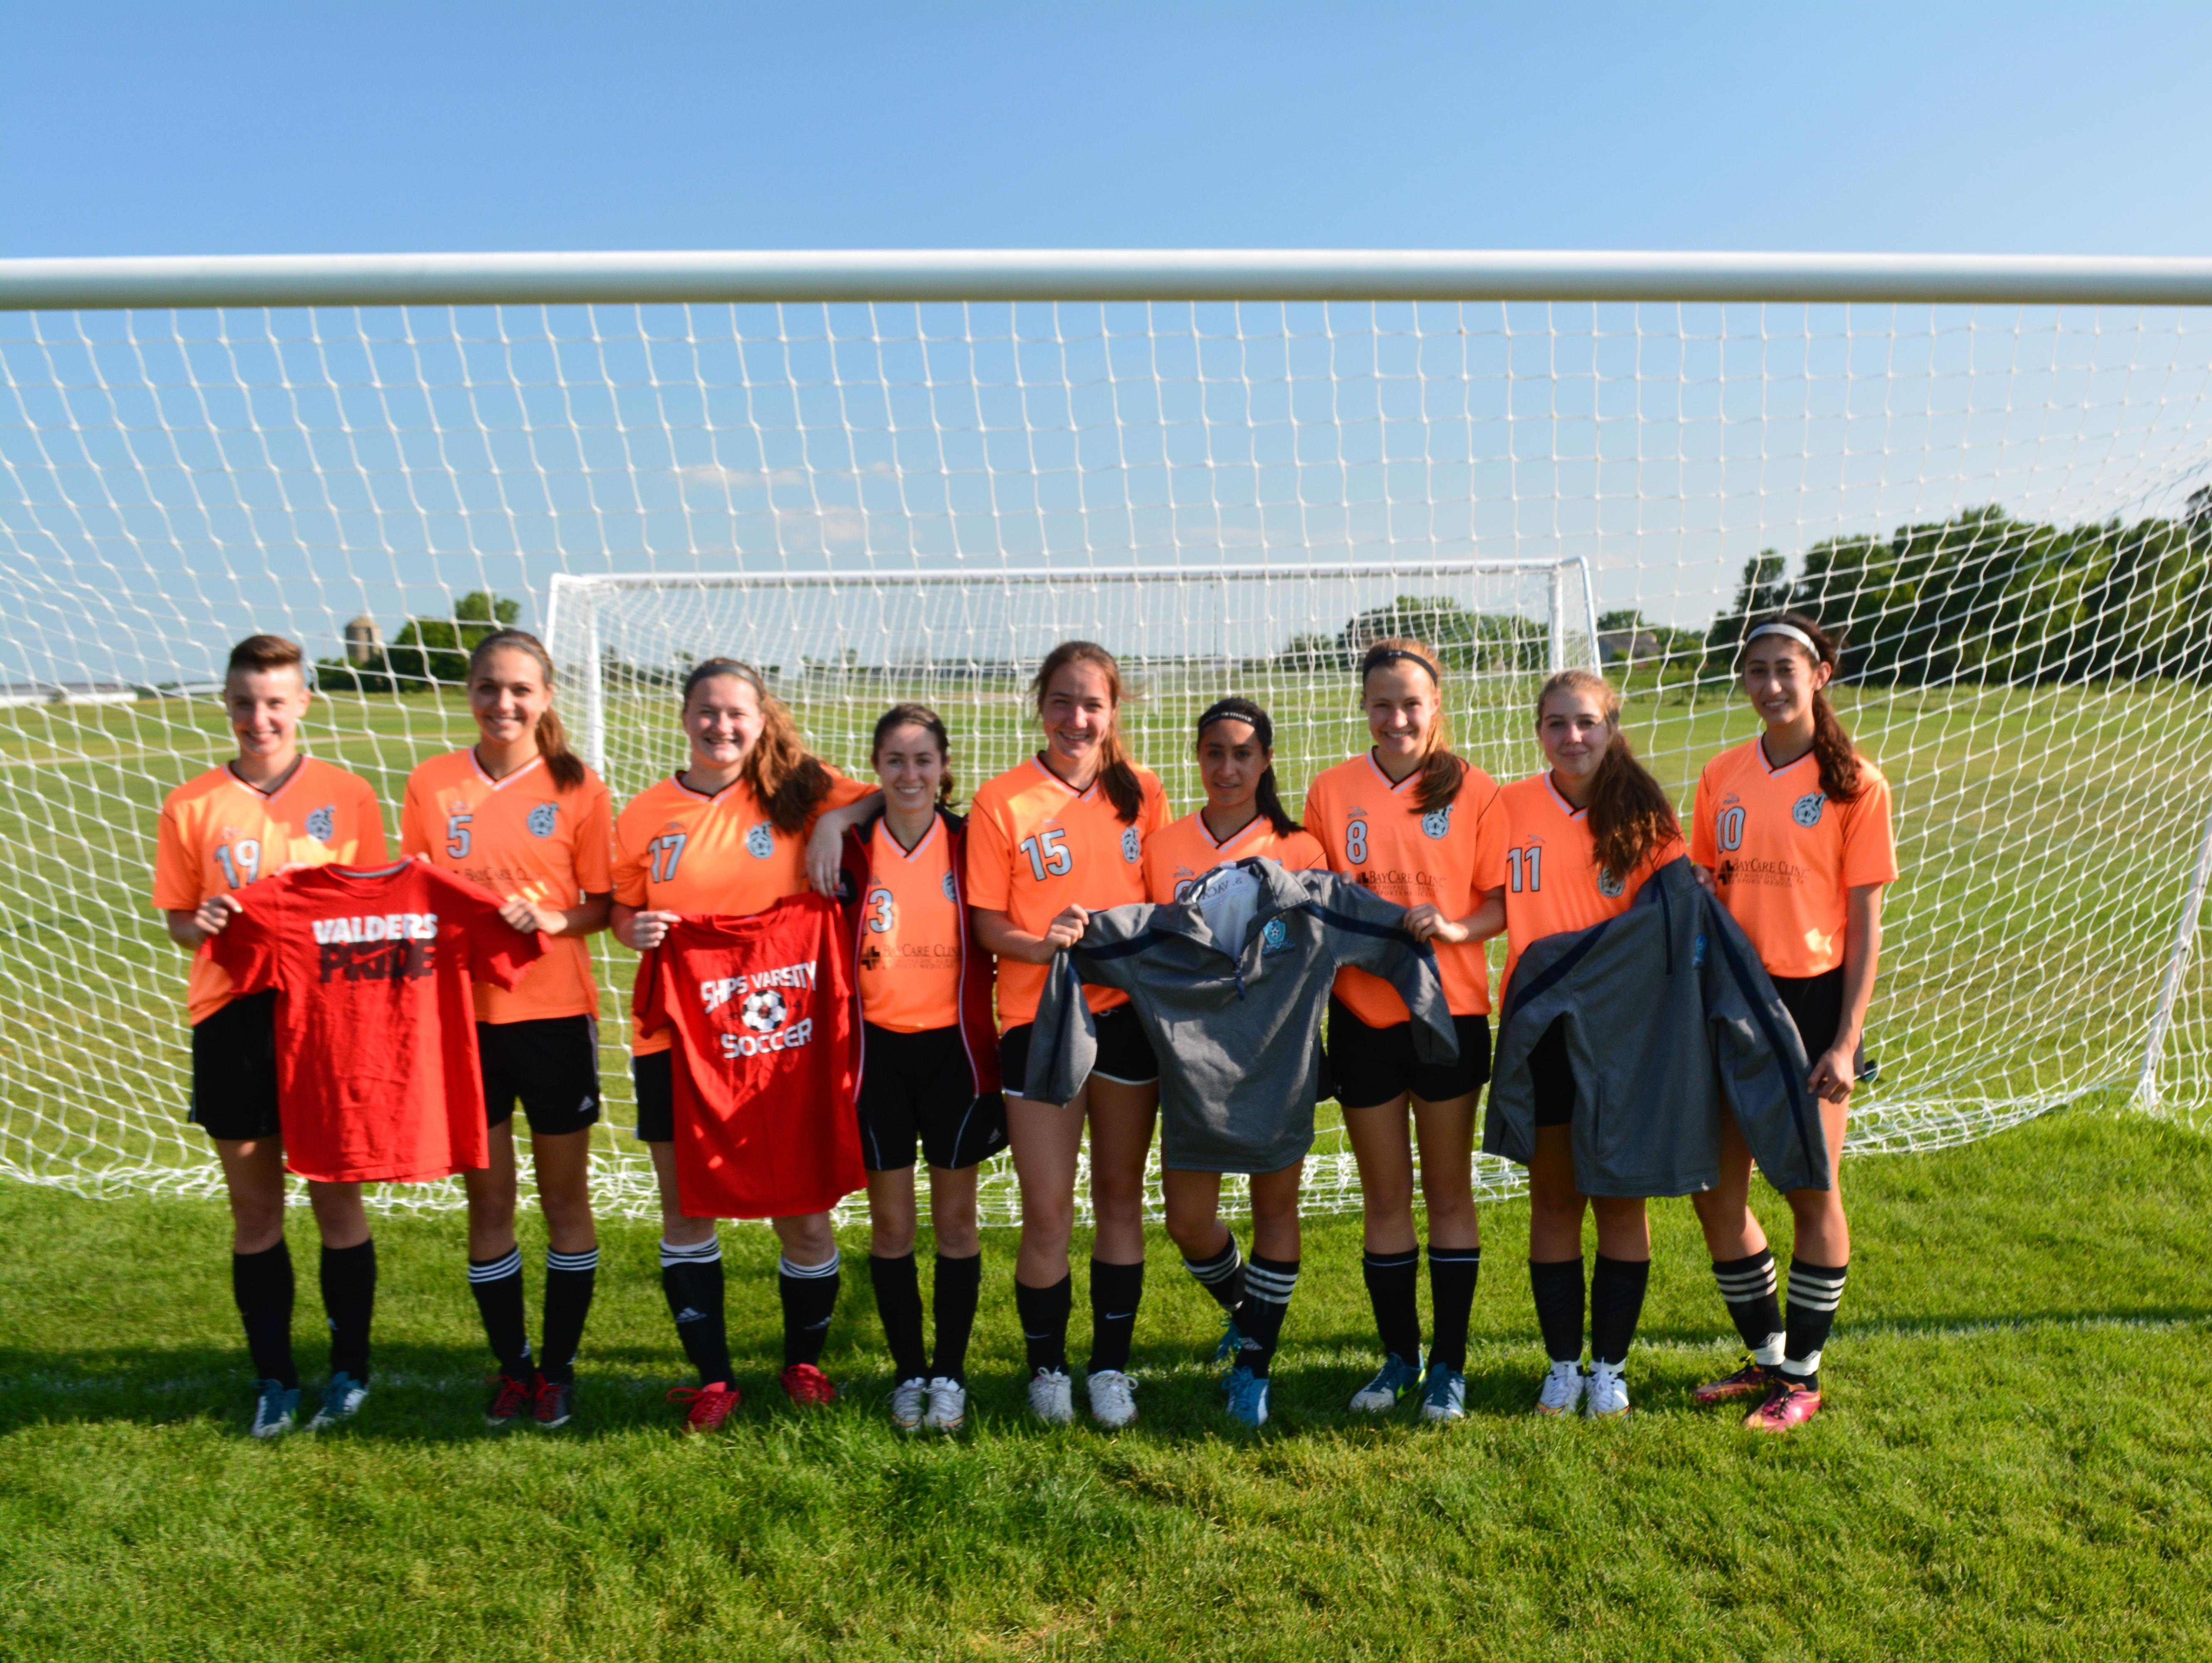 The Manitowoc Goalgetters U-18 girls squad is comprised of players from across Manitowoc County. Pictured, L-R — Amanda Miller, Morgan Kelly, Hollie Nichols, Sydney Gutman. Molly Mleziva, Sophia Vaca, Emma Dramm, Lauren Clark, Andrea Vaca Not pictured — Ellie Pecore and Megan Kronschnabel.